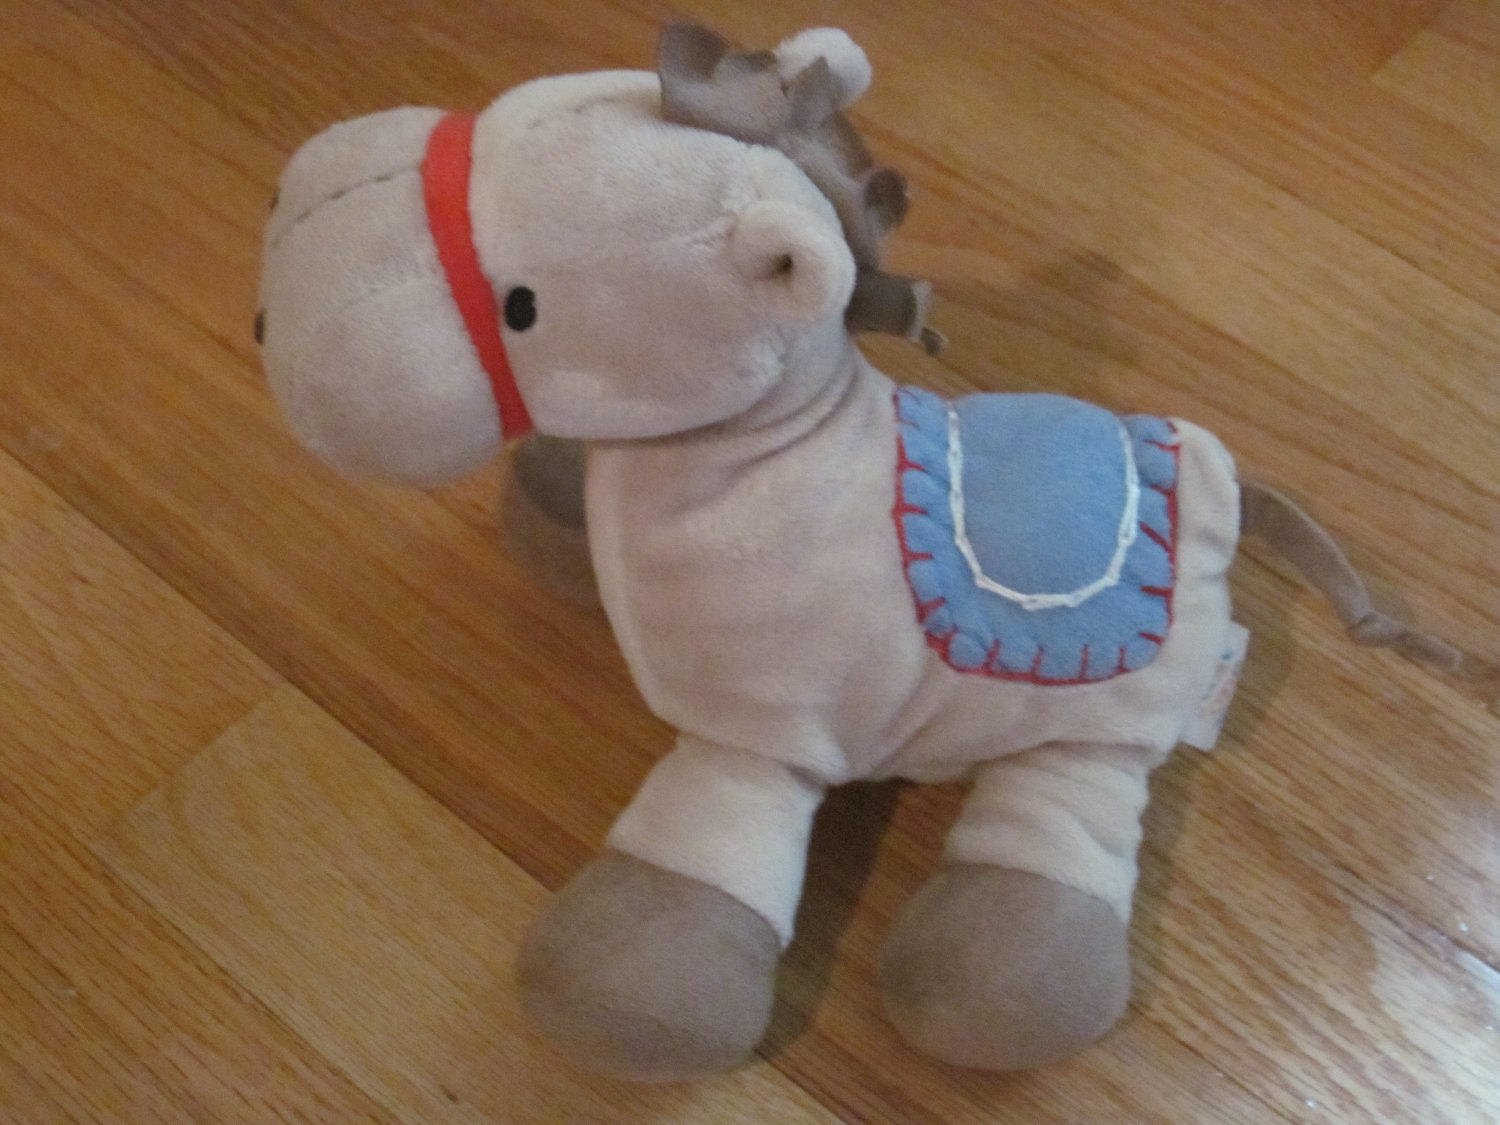 Carters Just One Year Plush Horse Pony Rattle Blue Saddle Red Bridle